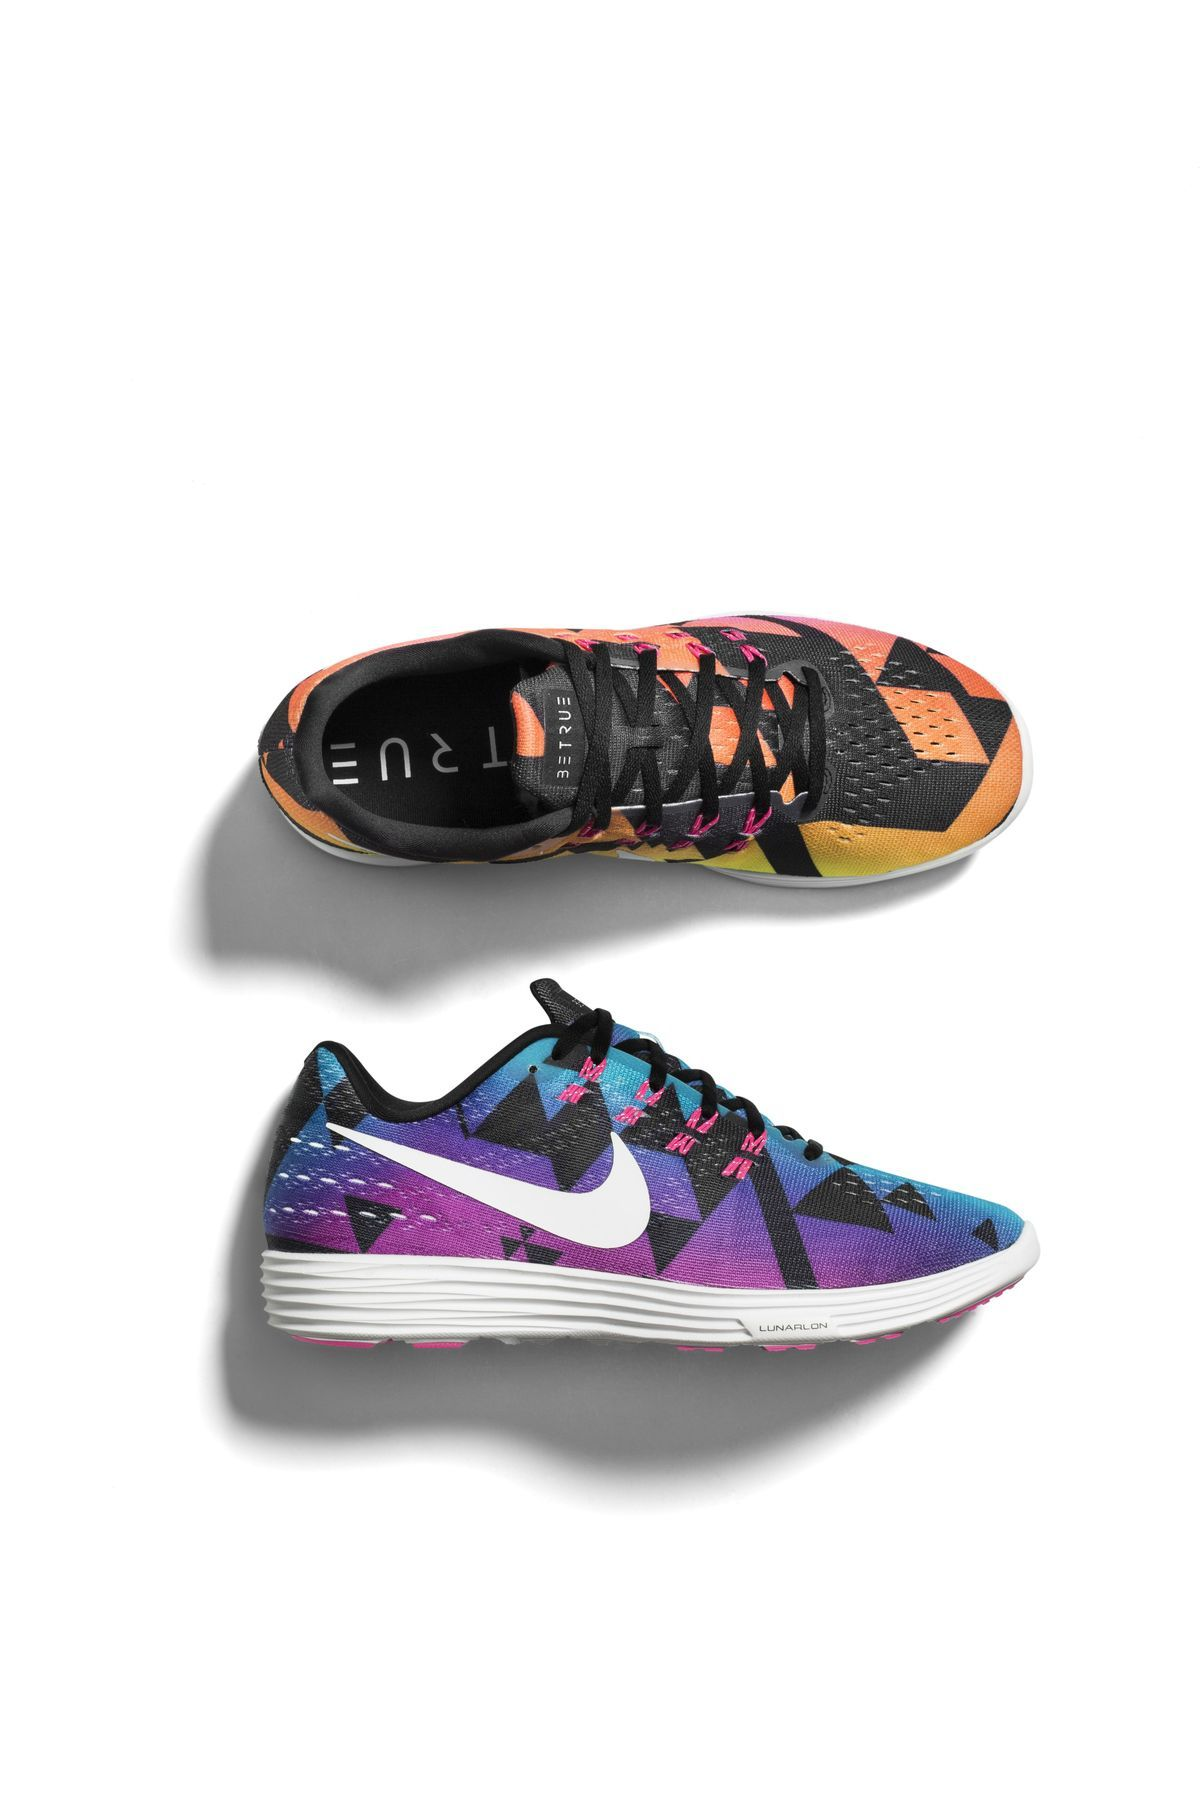 db640d6f7bb0 Nike s BETRUE collection. Nike s BETRUE collection Pride Shoes ...